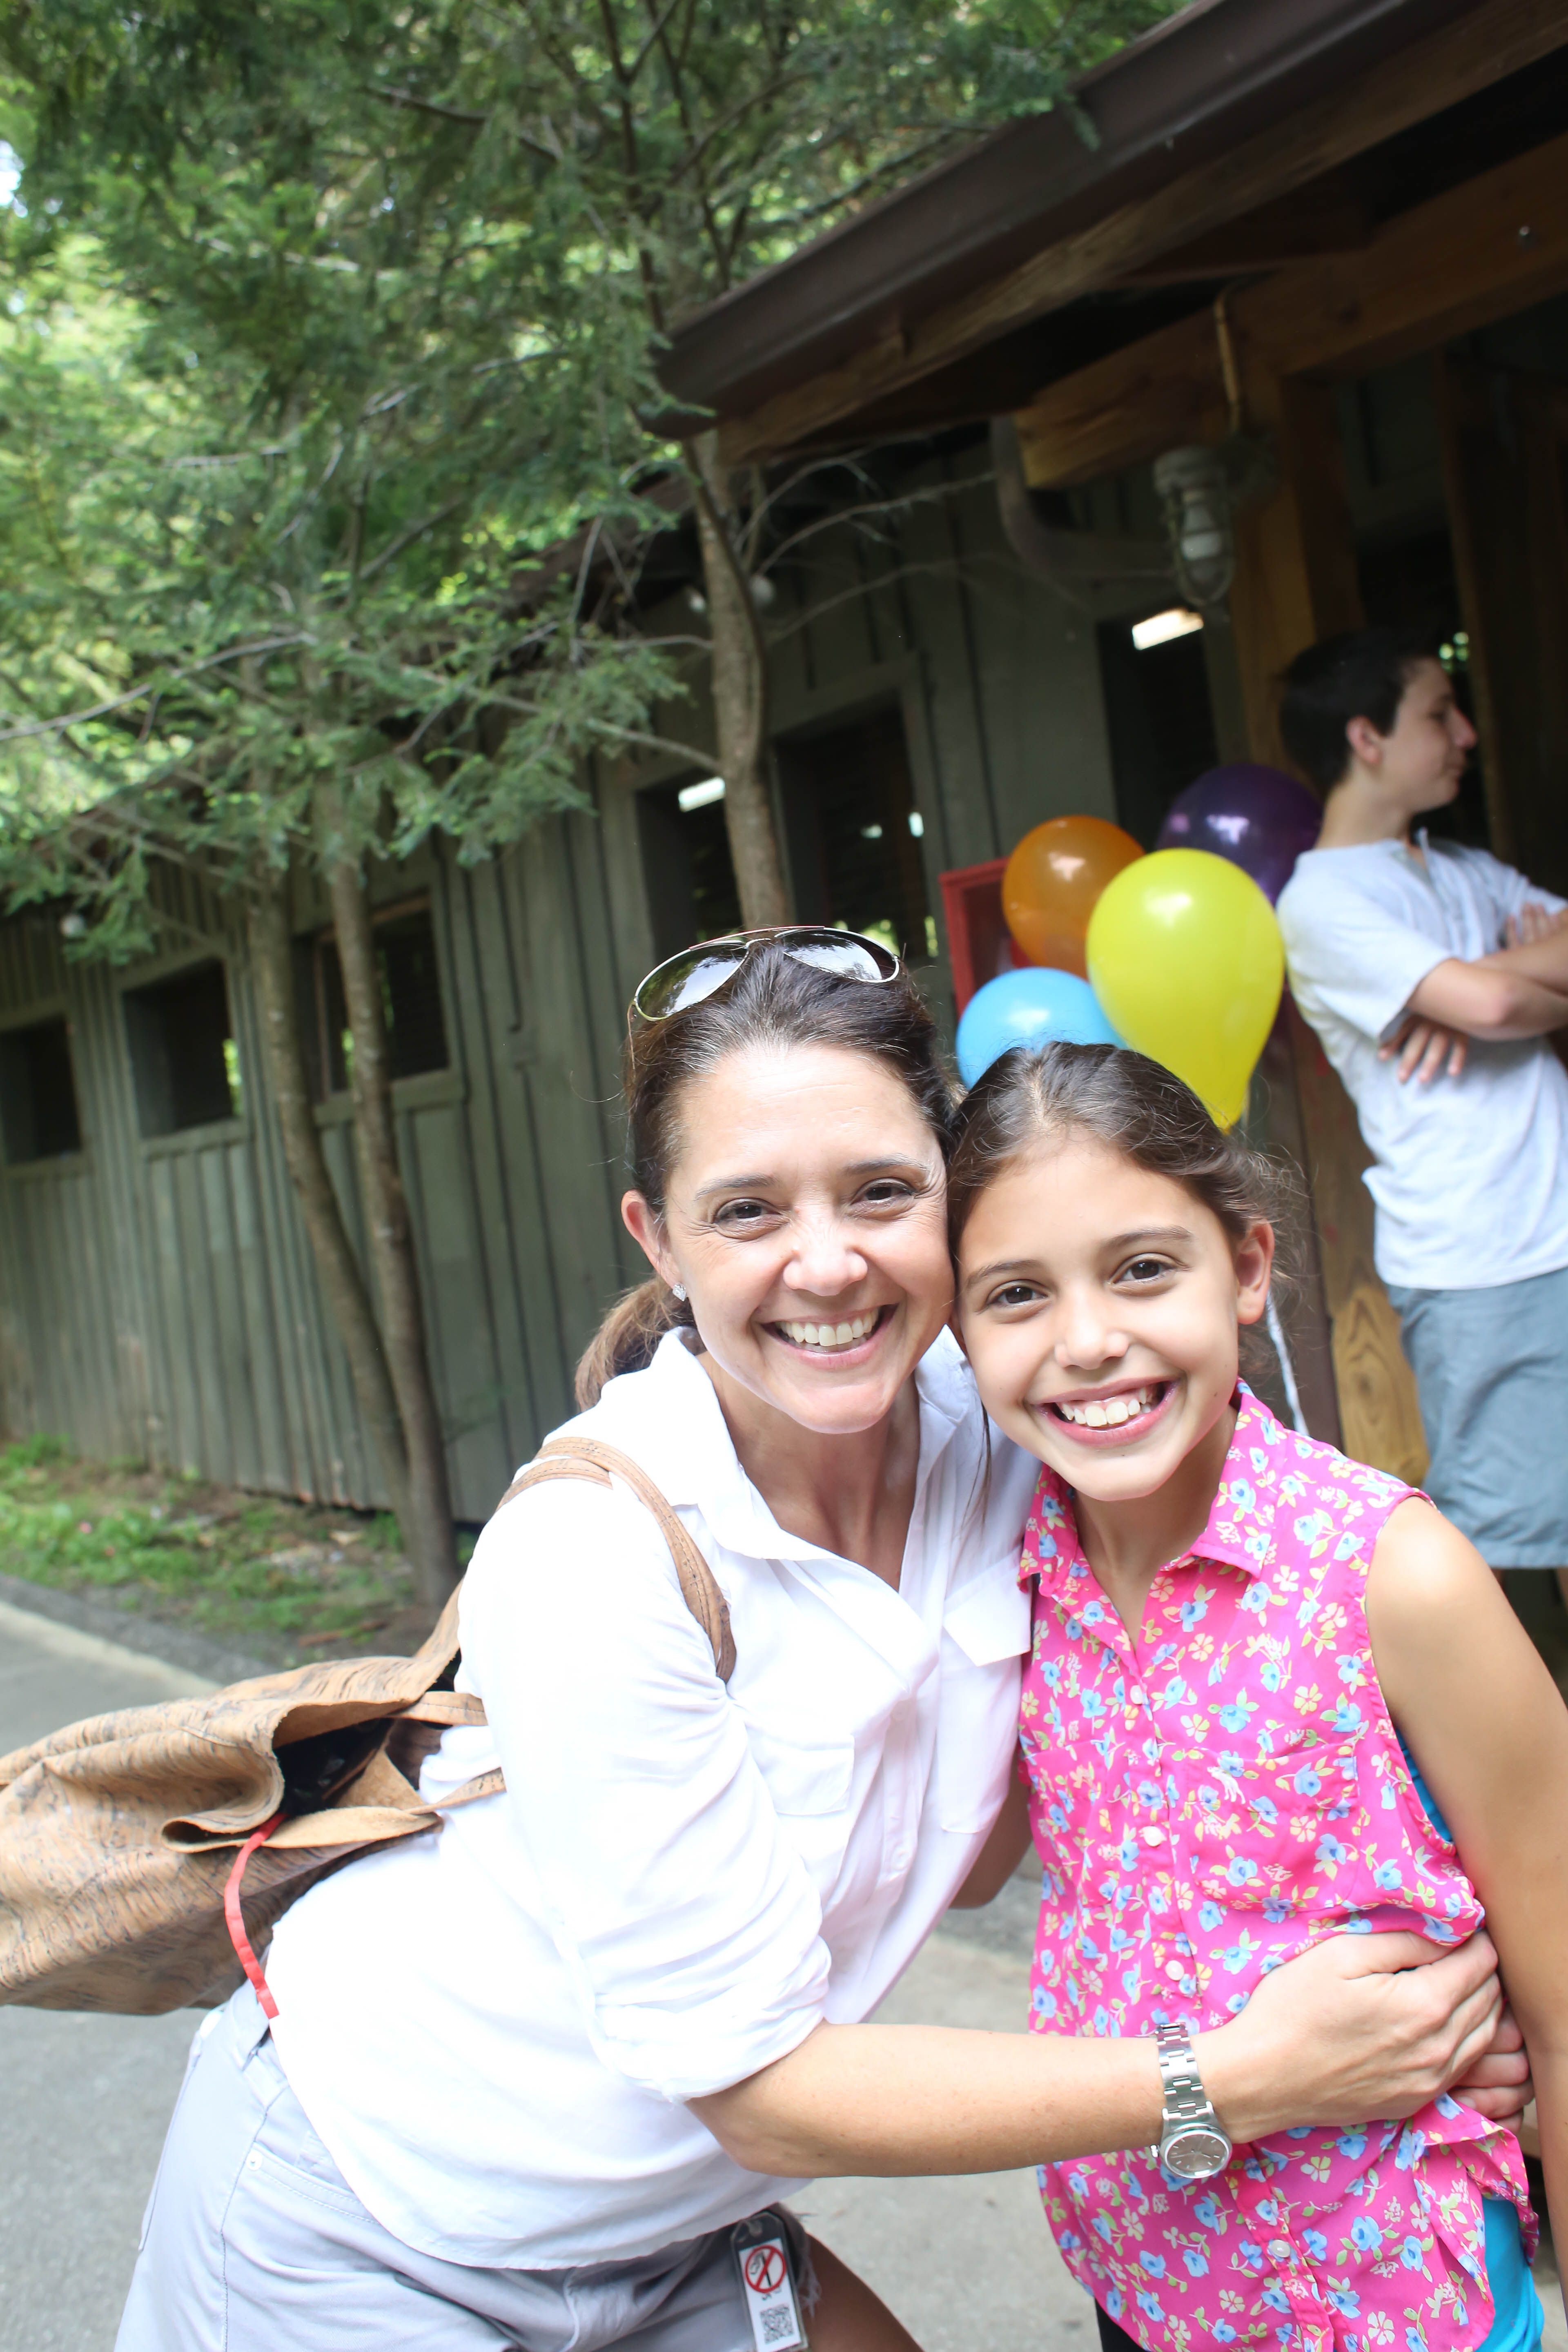 Mom And Daughter Bedroom Ideas: A Boys' Camp Blog, A Girls' Camp